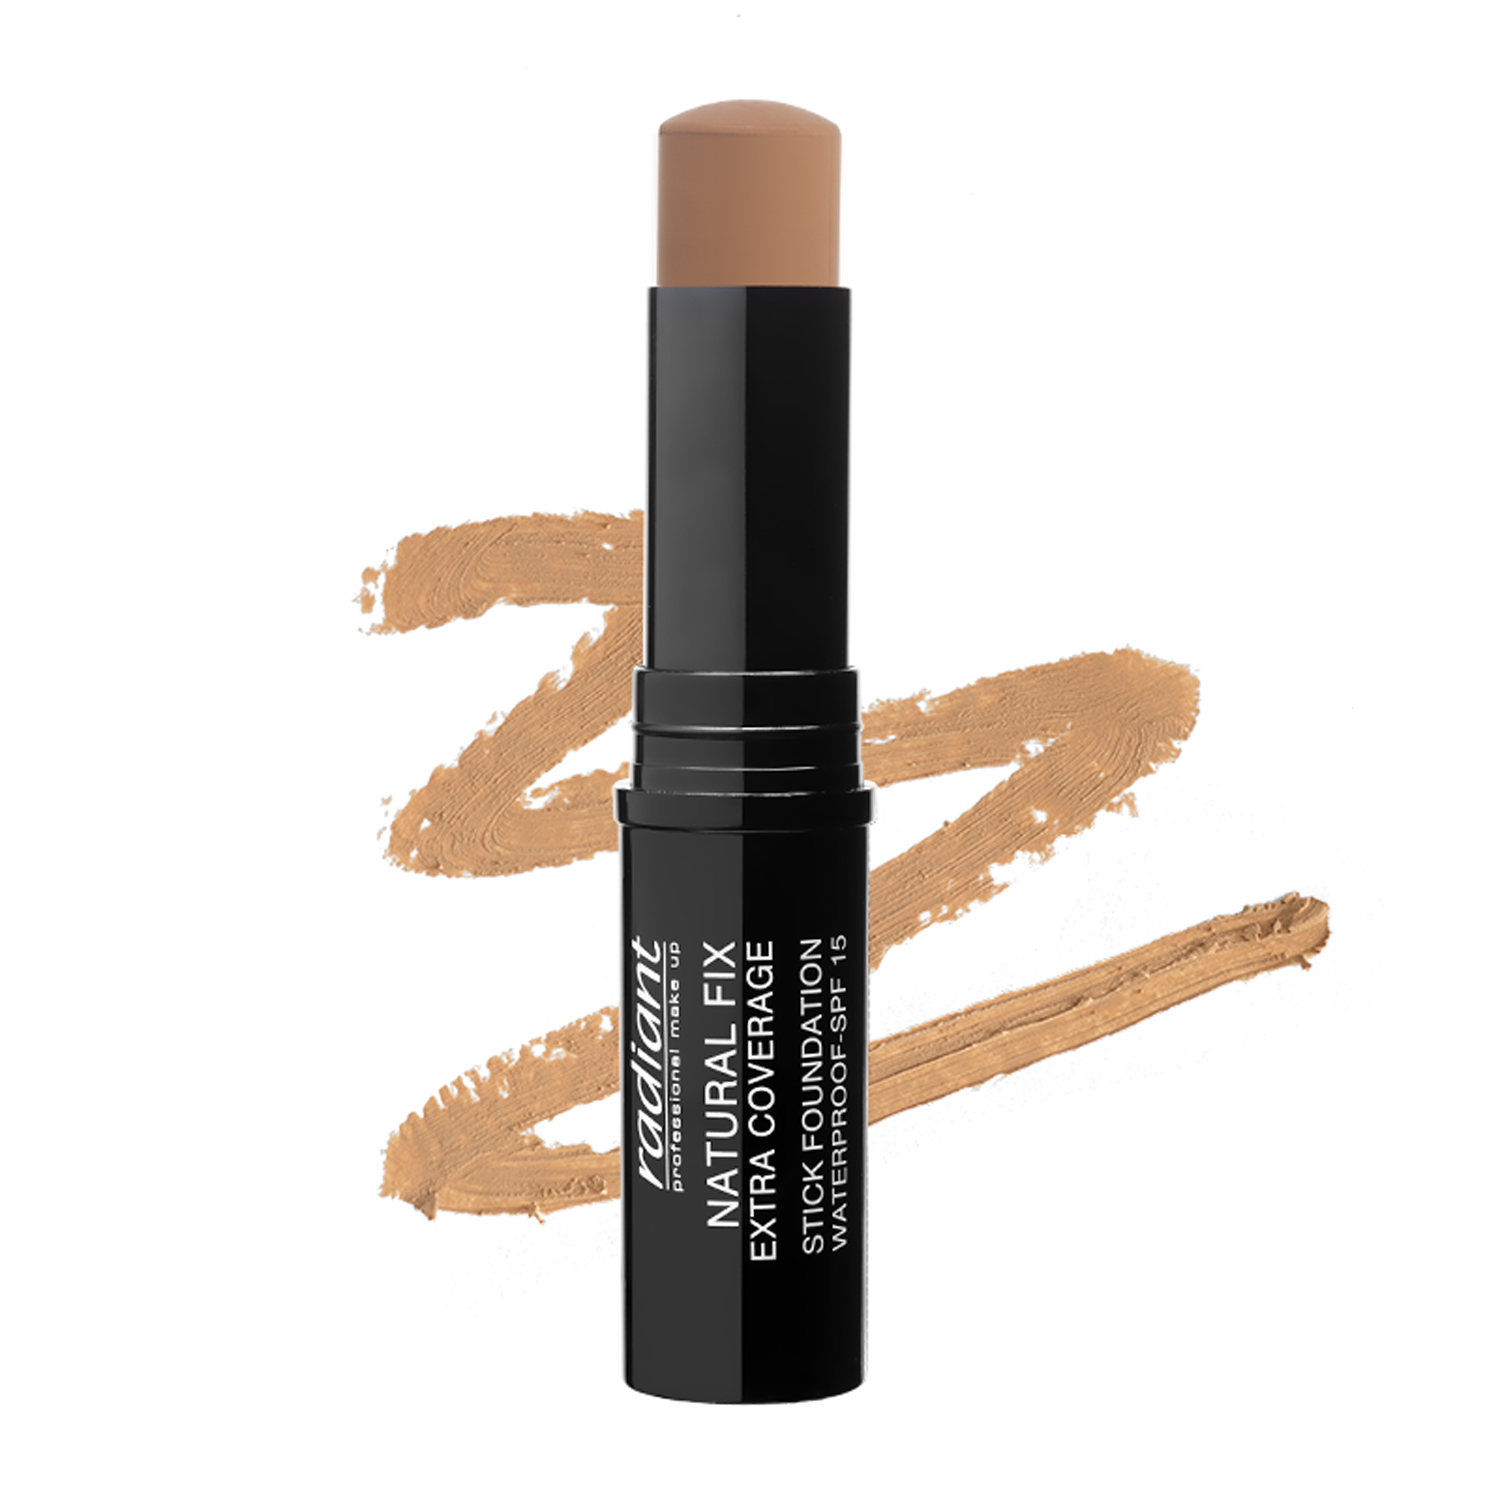 NATURAL FIX EXTRA COVERAGE STICK FOUNDATION  WATERPROOF SPF 15 (04 PEANUT)